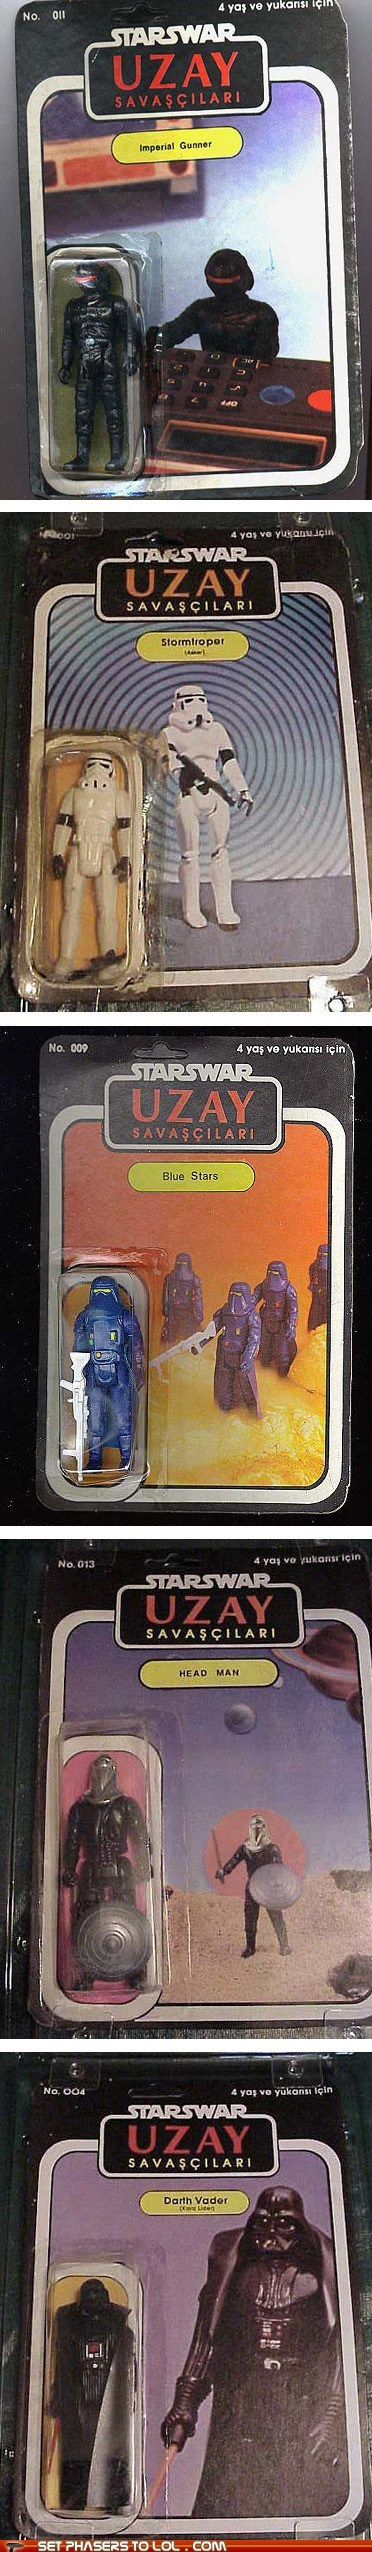 action figures bootleg cheap darth vader knock offs ripoff star wars stars war - 6031248896